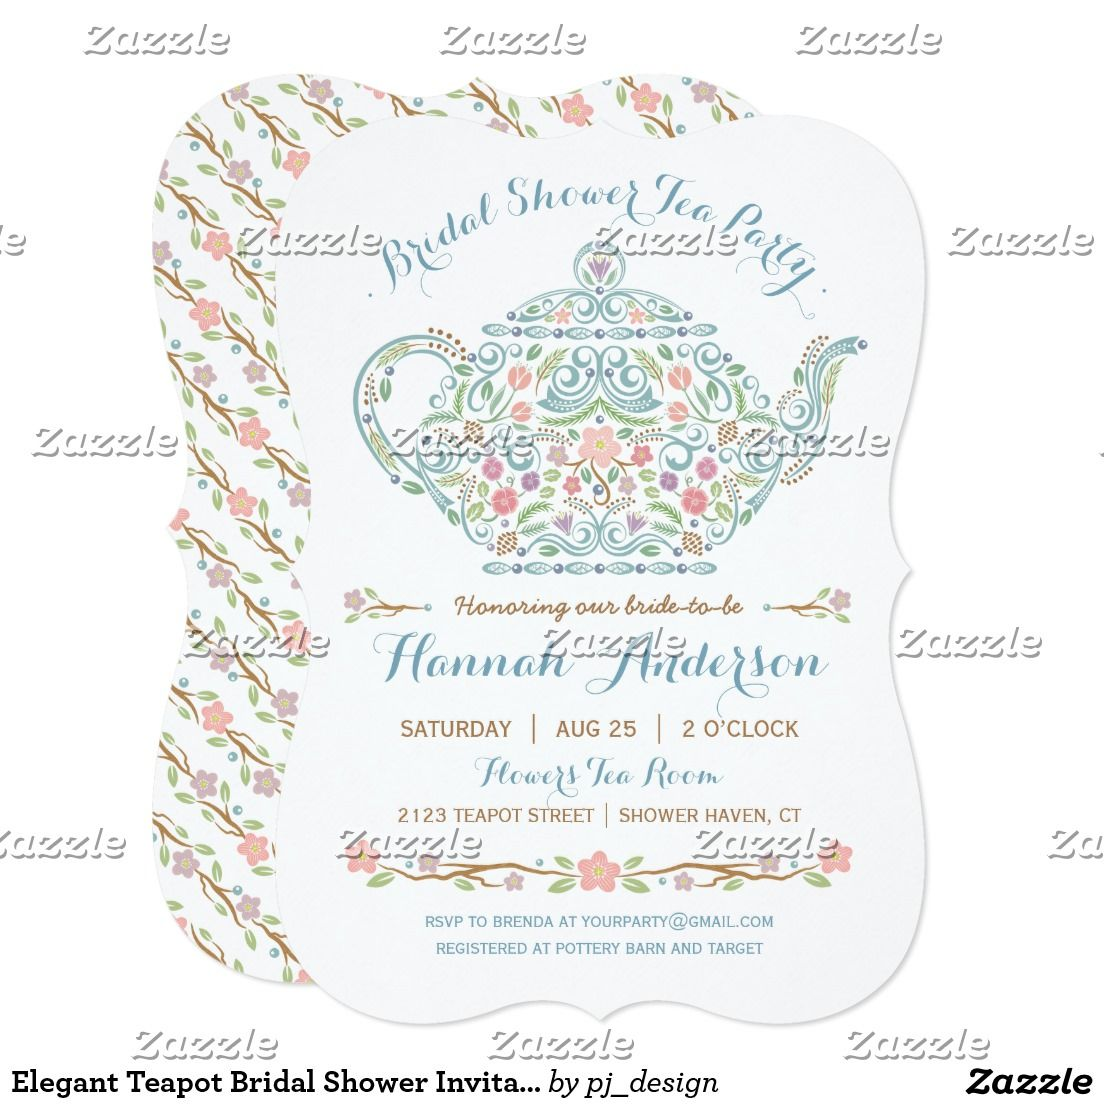 Elegant teapot bridal shower invitation tea party invitiation elegant teapot bridal shower invitation filmwisefo Gallery